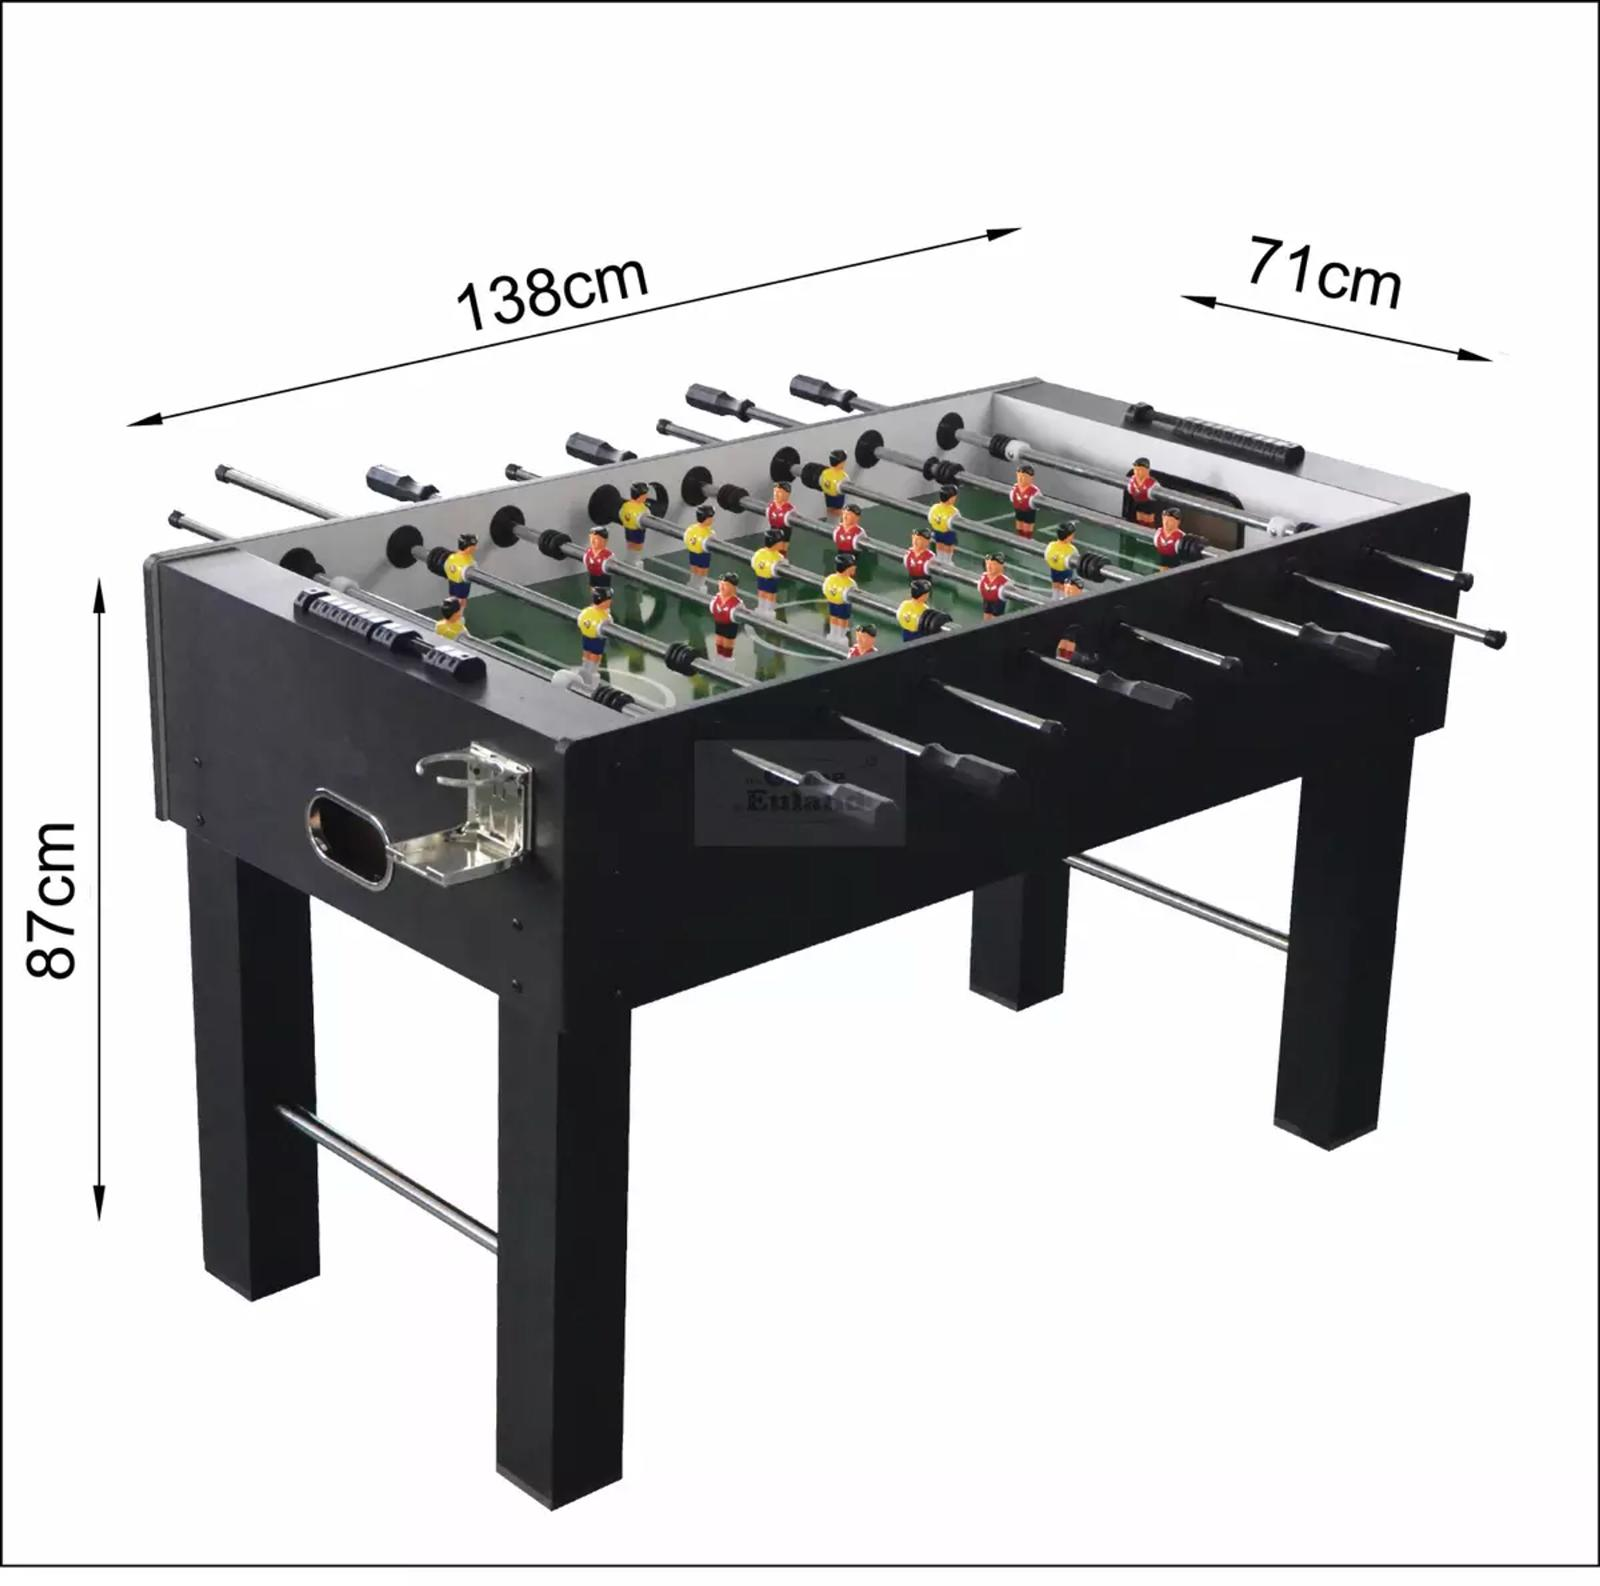 Fooseball for some competitive fun! Put yourself against your friends and try to beat them by outscoring them.